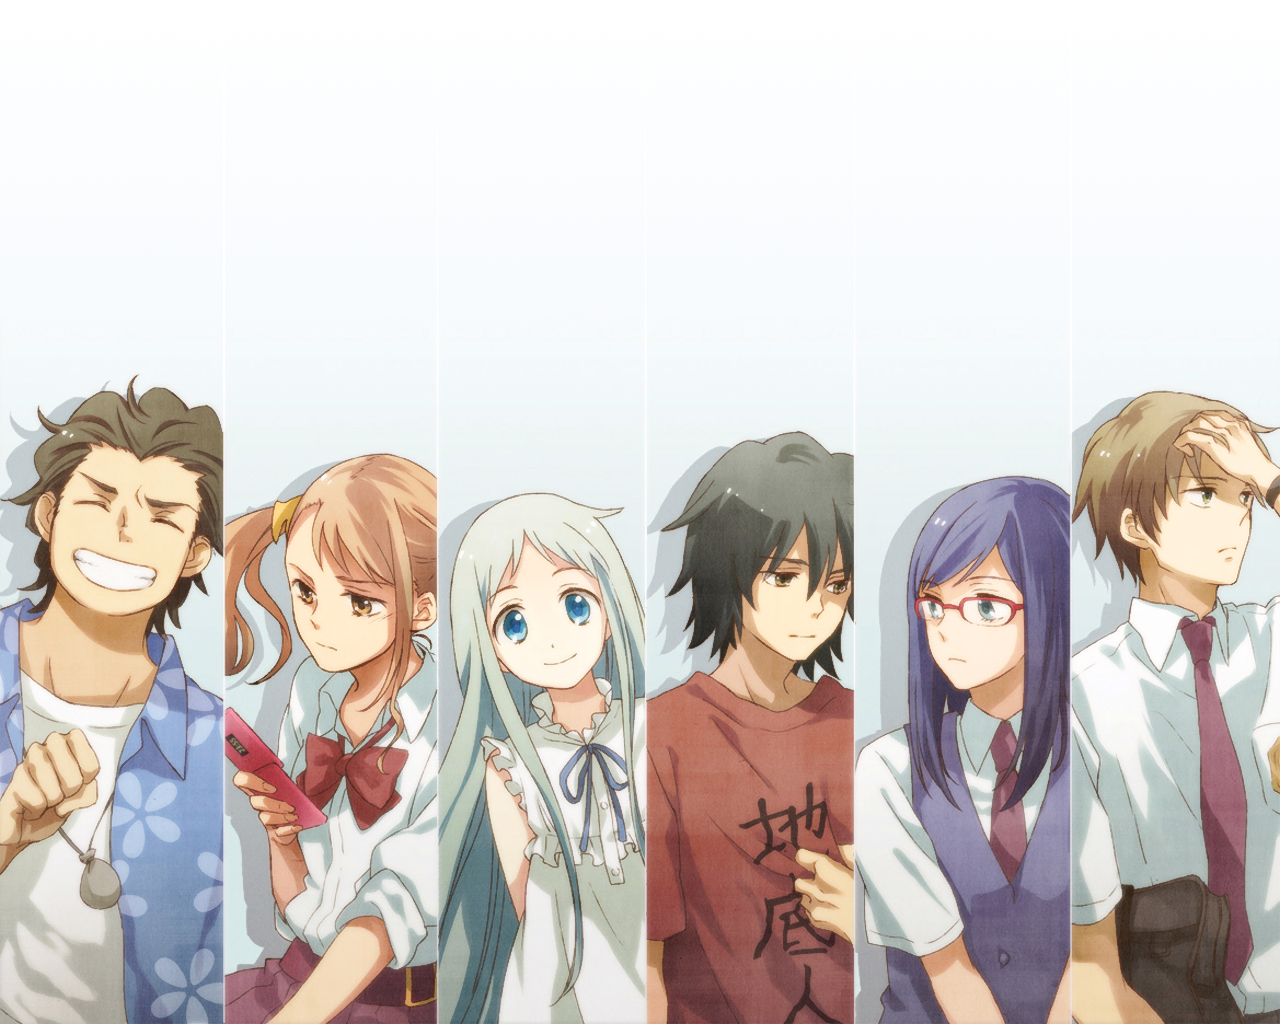 anime best friends group boys and girls - Google Search ...  |Anime Group Of Friends Boys And Girls